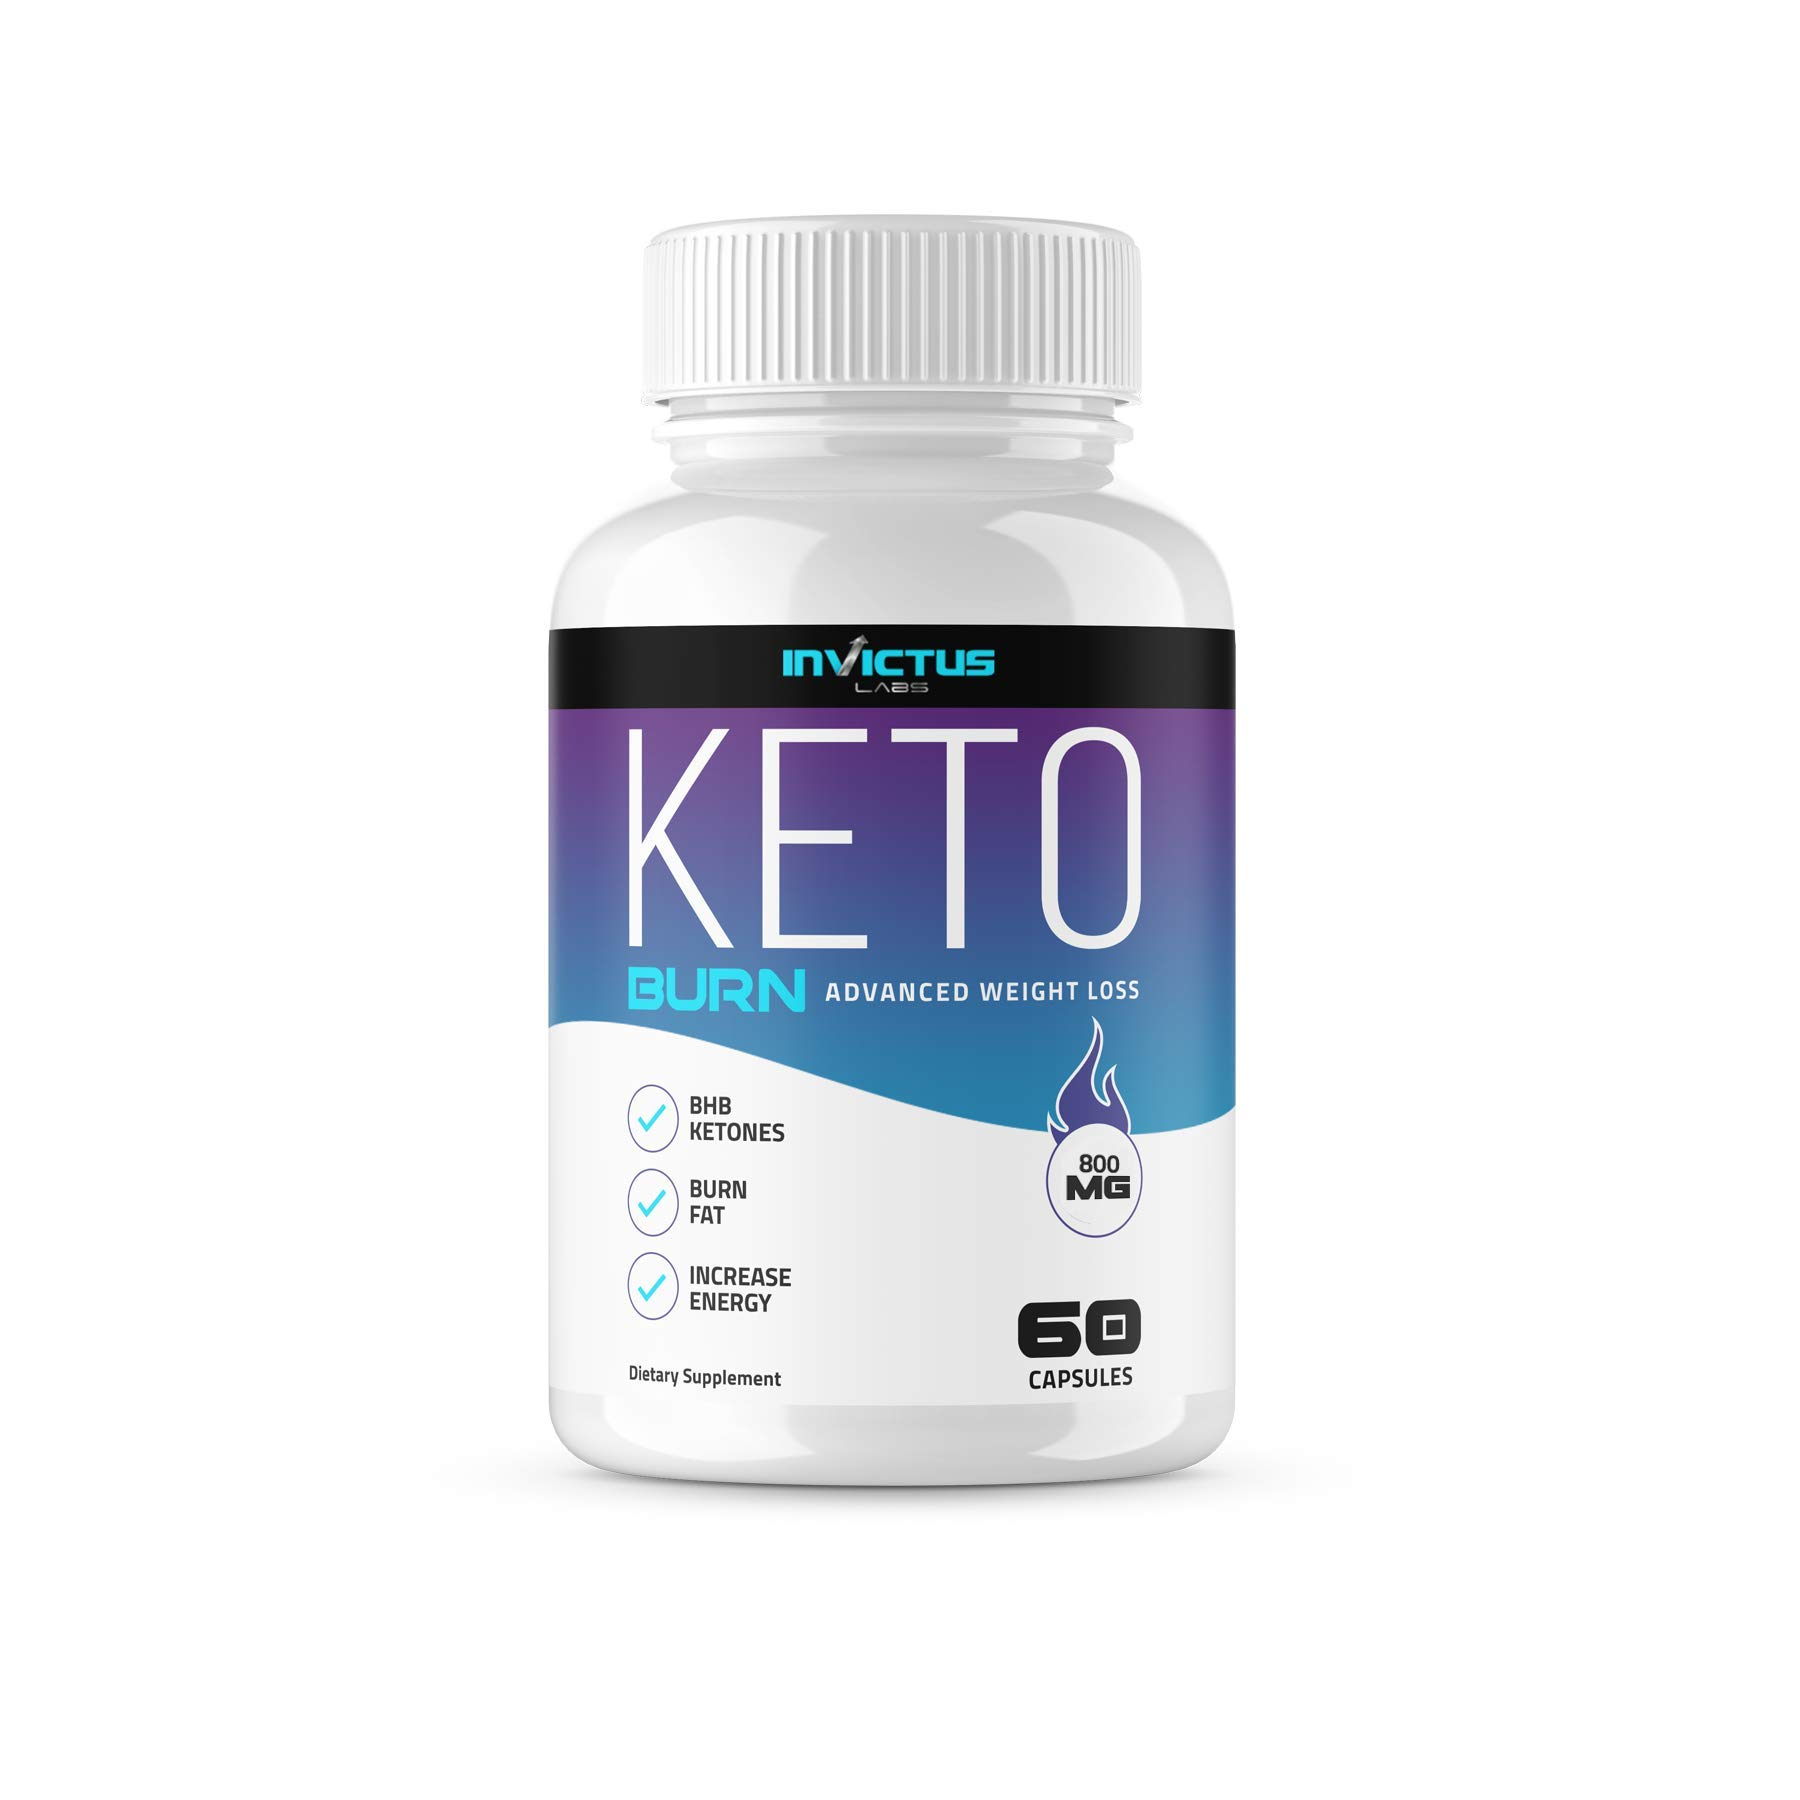 Best Keto Diet Pills - Weight Loss Supplement - Burns Fat Fast - Boost Energy and Metabolism - 60 Capsules